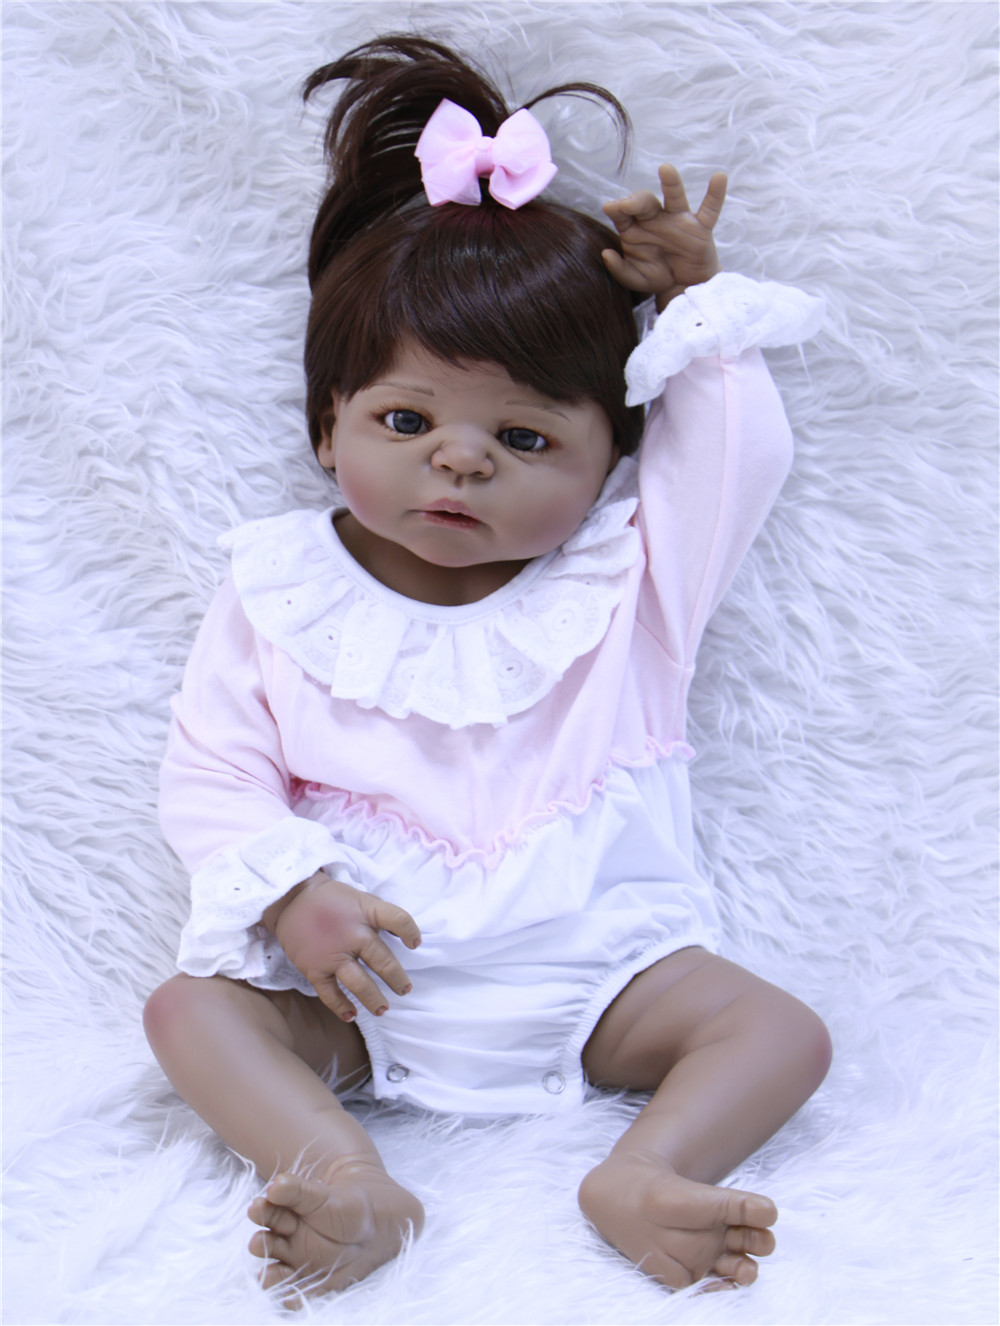 57cm full Silicone Reborn Baby Doll kids Playmate Gift For Girls 23 Inch Baby Alive Soft Toys For Bouquets Doll Bebes Reborn57cm full Silicone Reborn Baby Doll kids Playmate Gift For Girls 23 Inch Baby Alive Soft Toys For Bouquets Doll Bebes Reborn